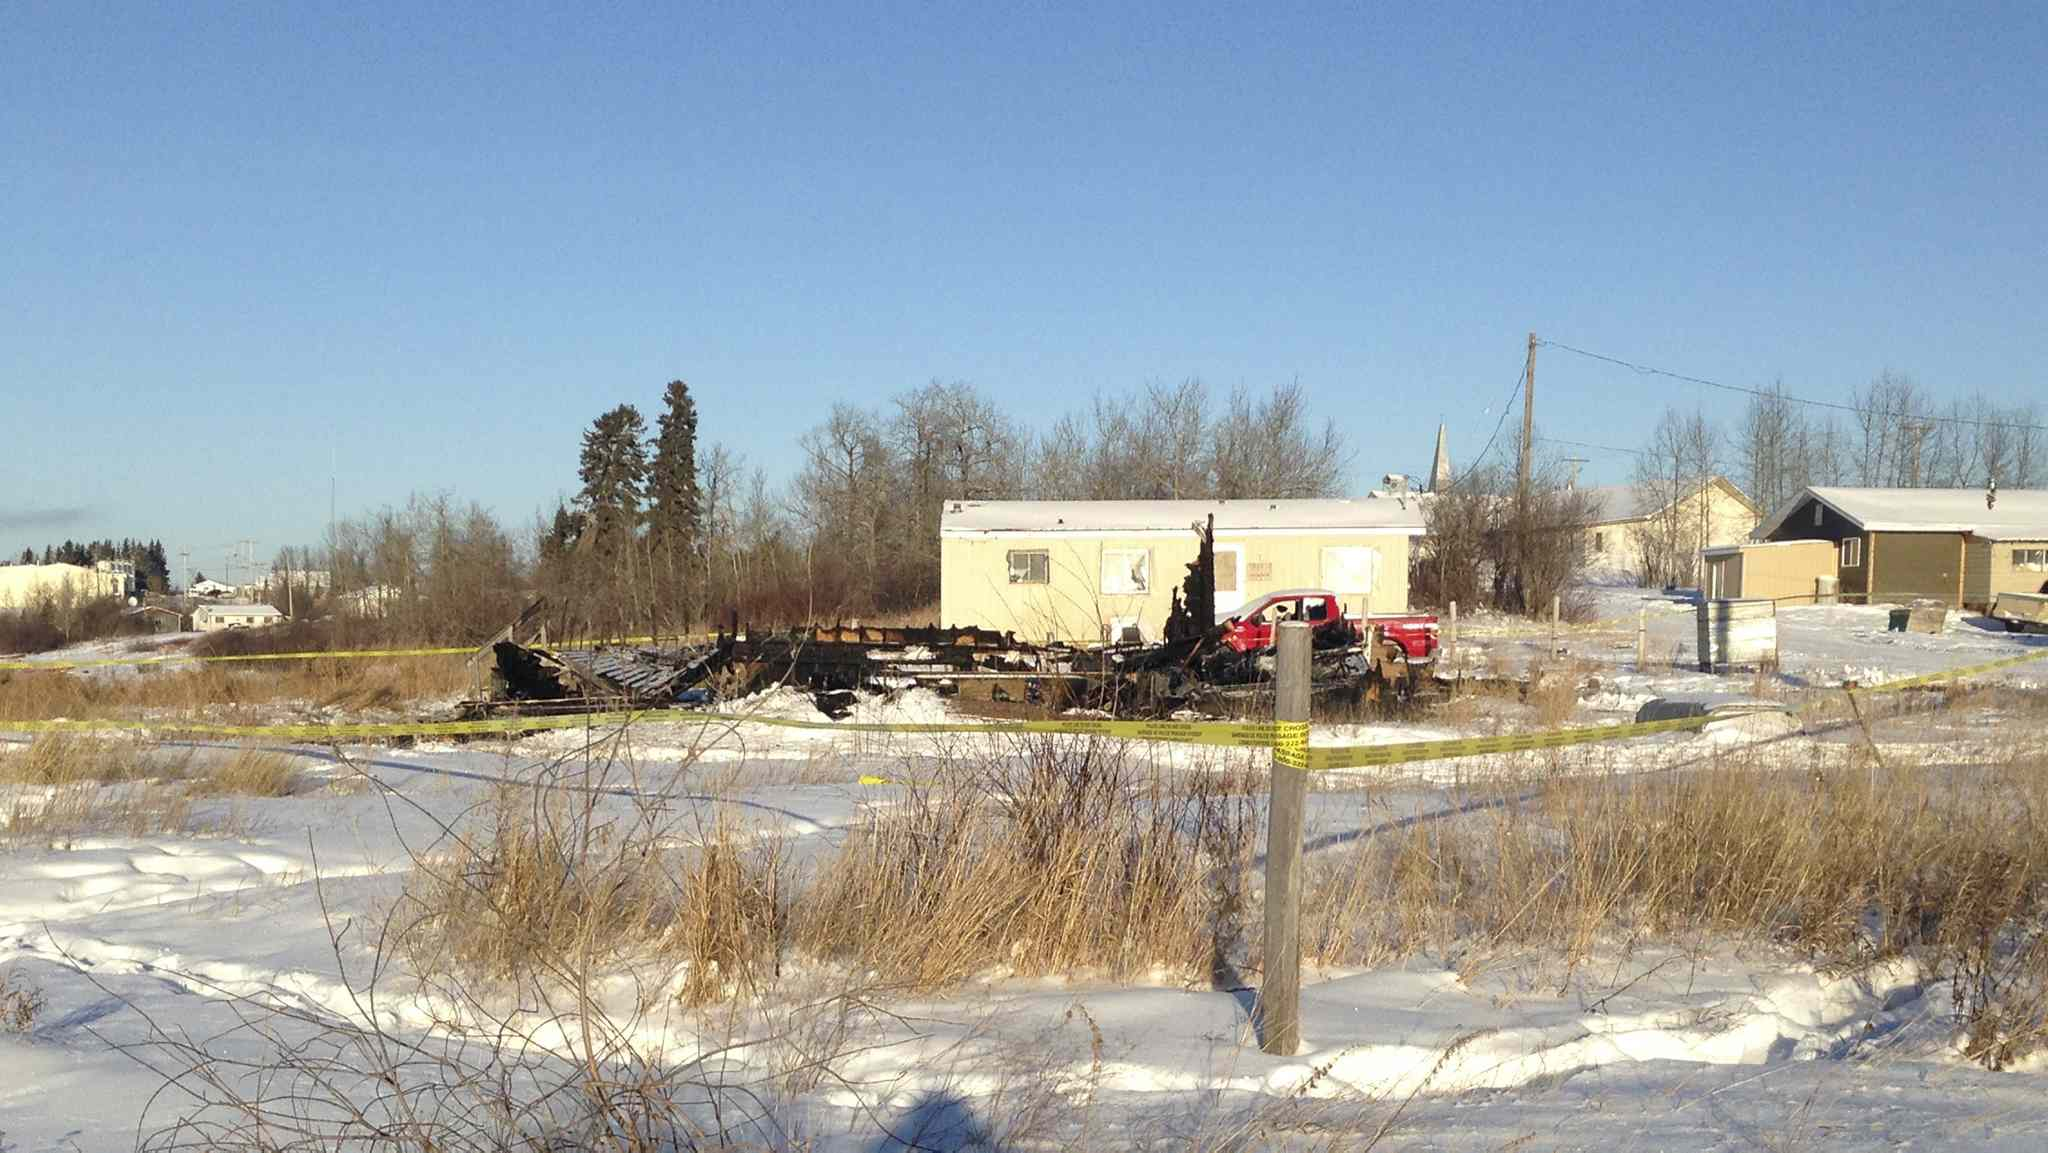 The bodies of three adults were discovered in the rubble of a home destroyed by fire early Tuesday morning (December 29, 2015) at Bunibonibee Cree Nation in northern Manitoba.